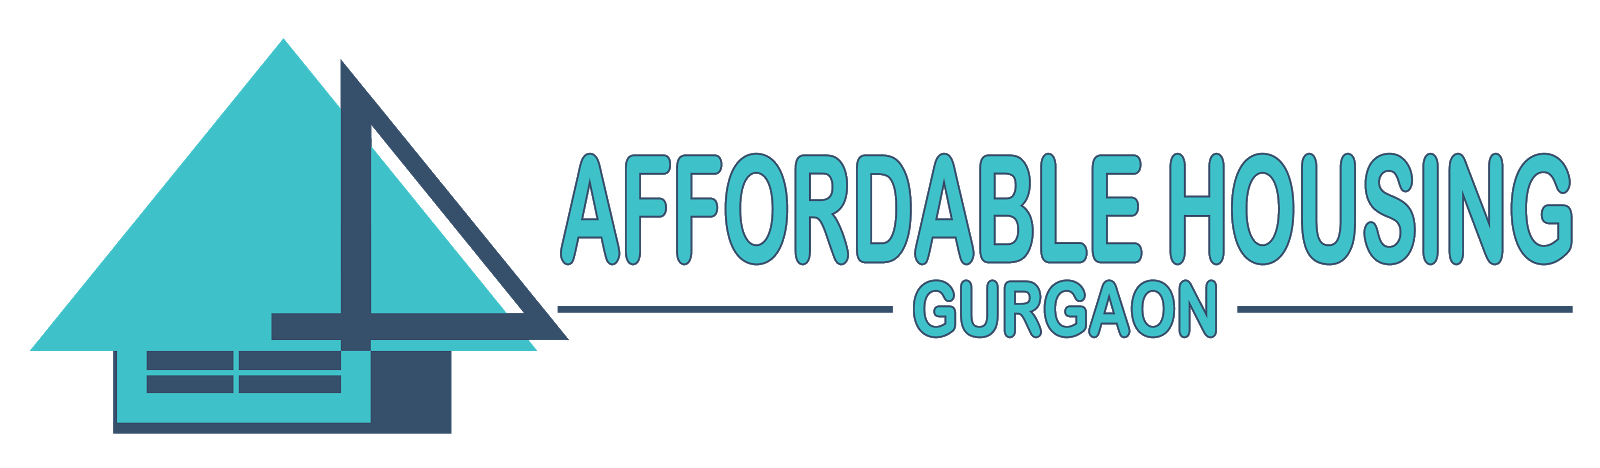 Huda Affordable Housing Gurgaon - Housing Projects in Haryana